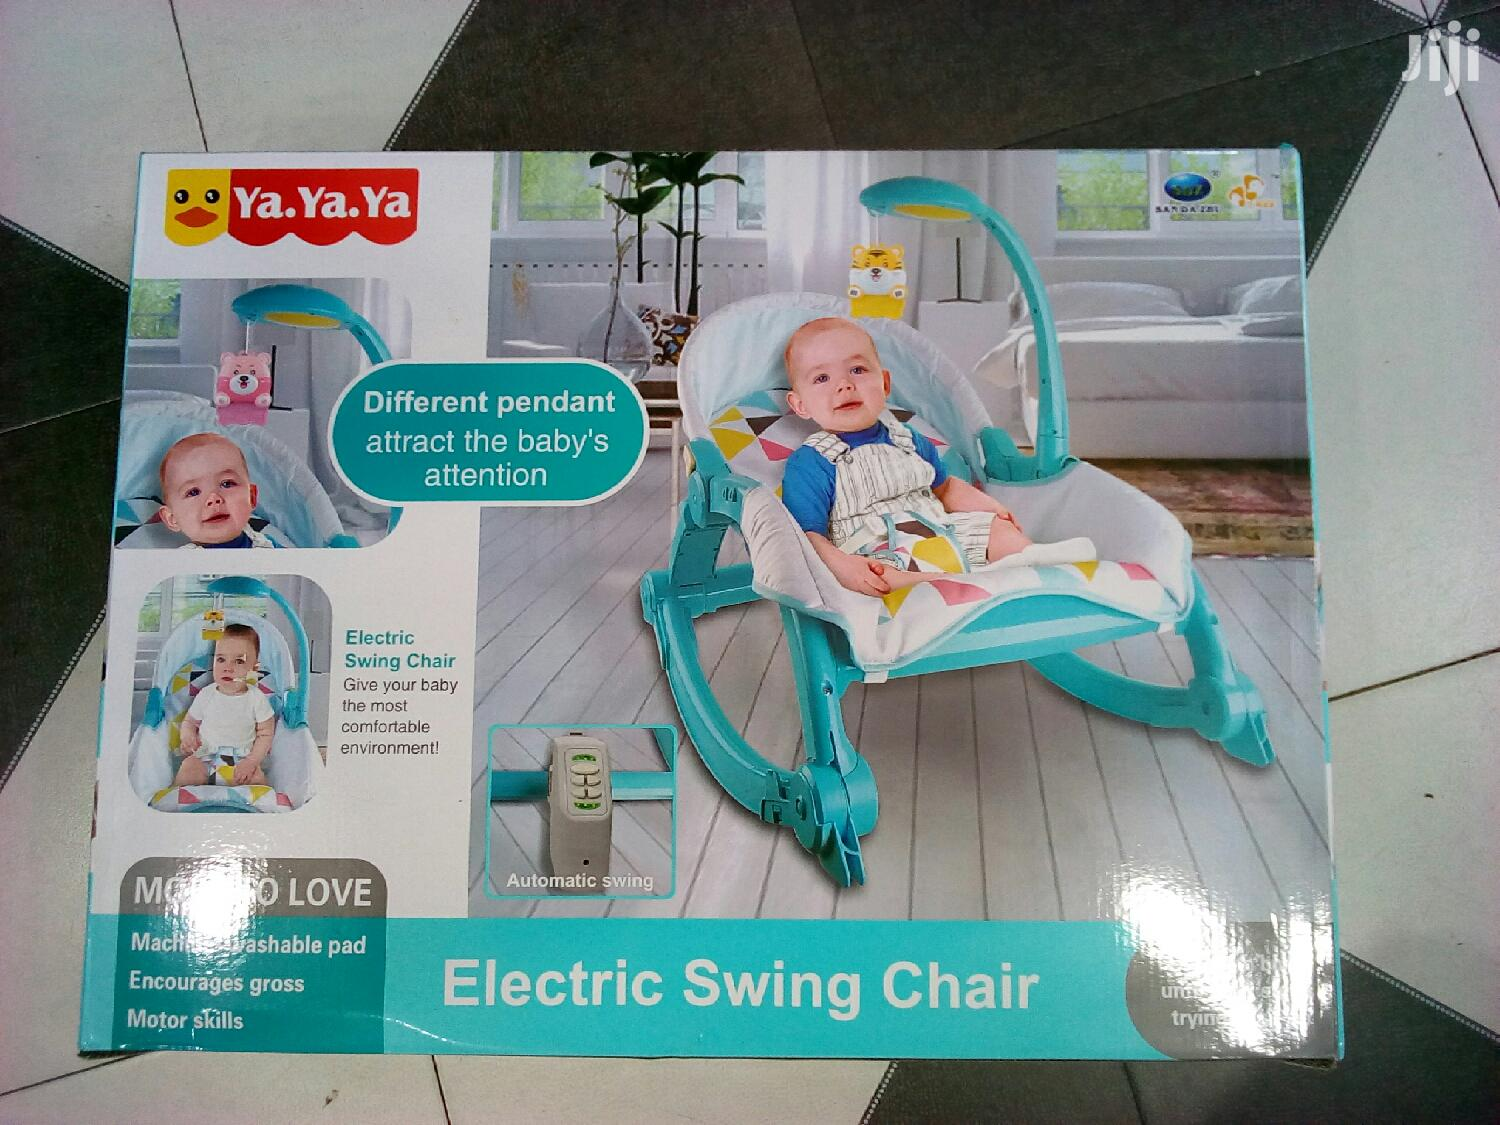 Musical Electric Swing Chair For Baby's